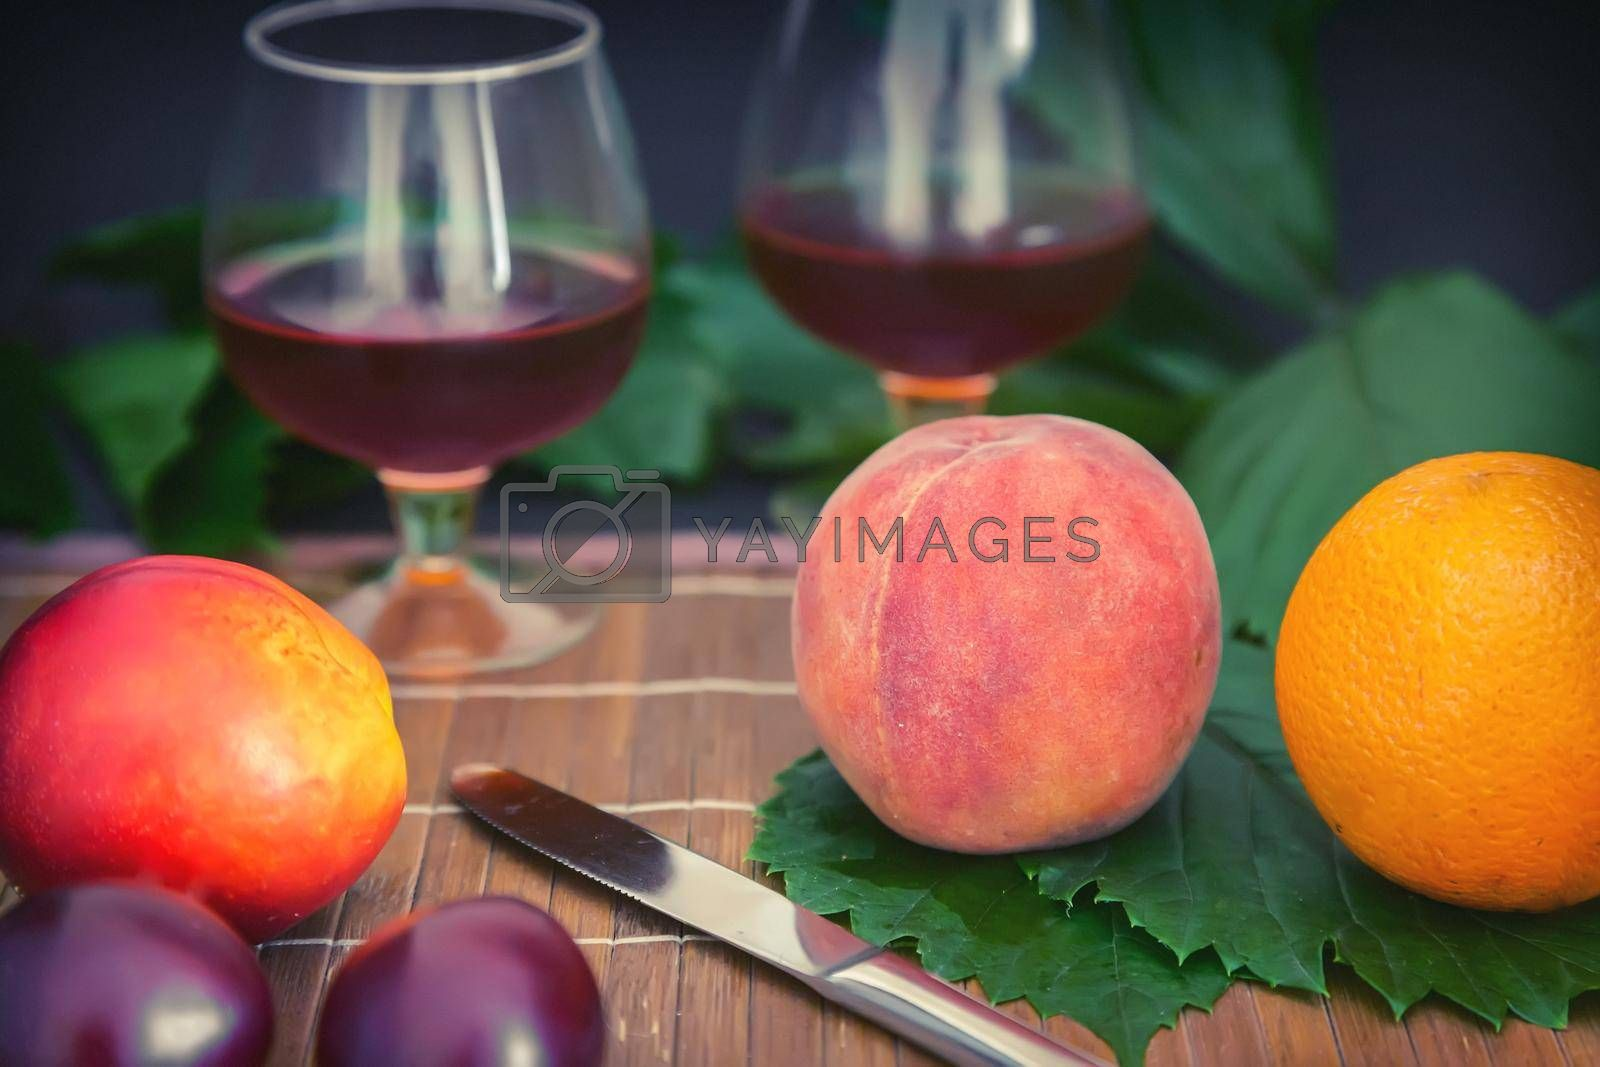 Still life: on the table on the green leaves are fruits, next to two glasses of wine.